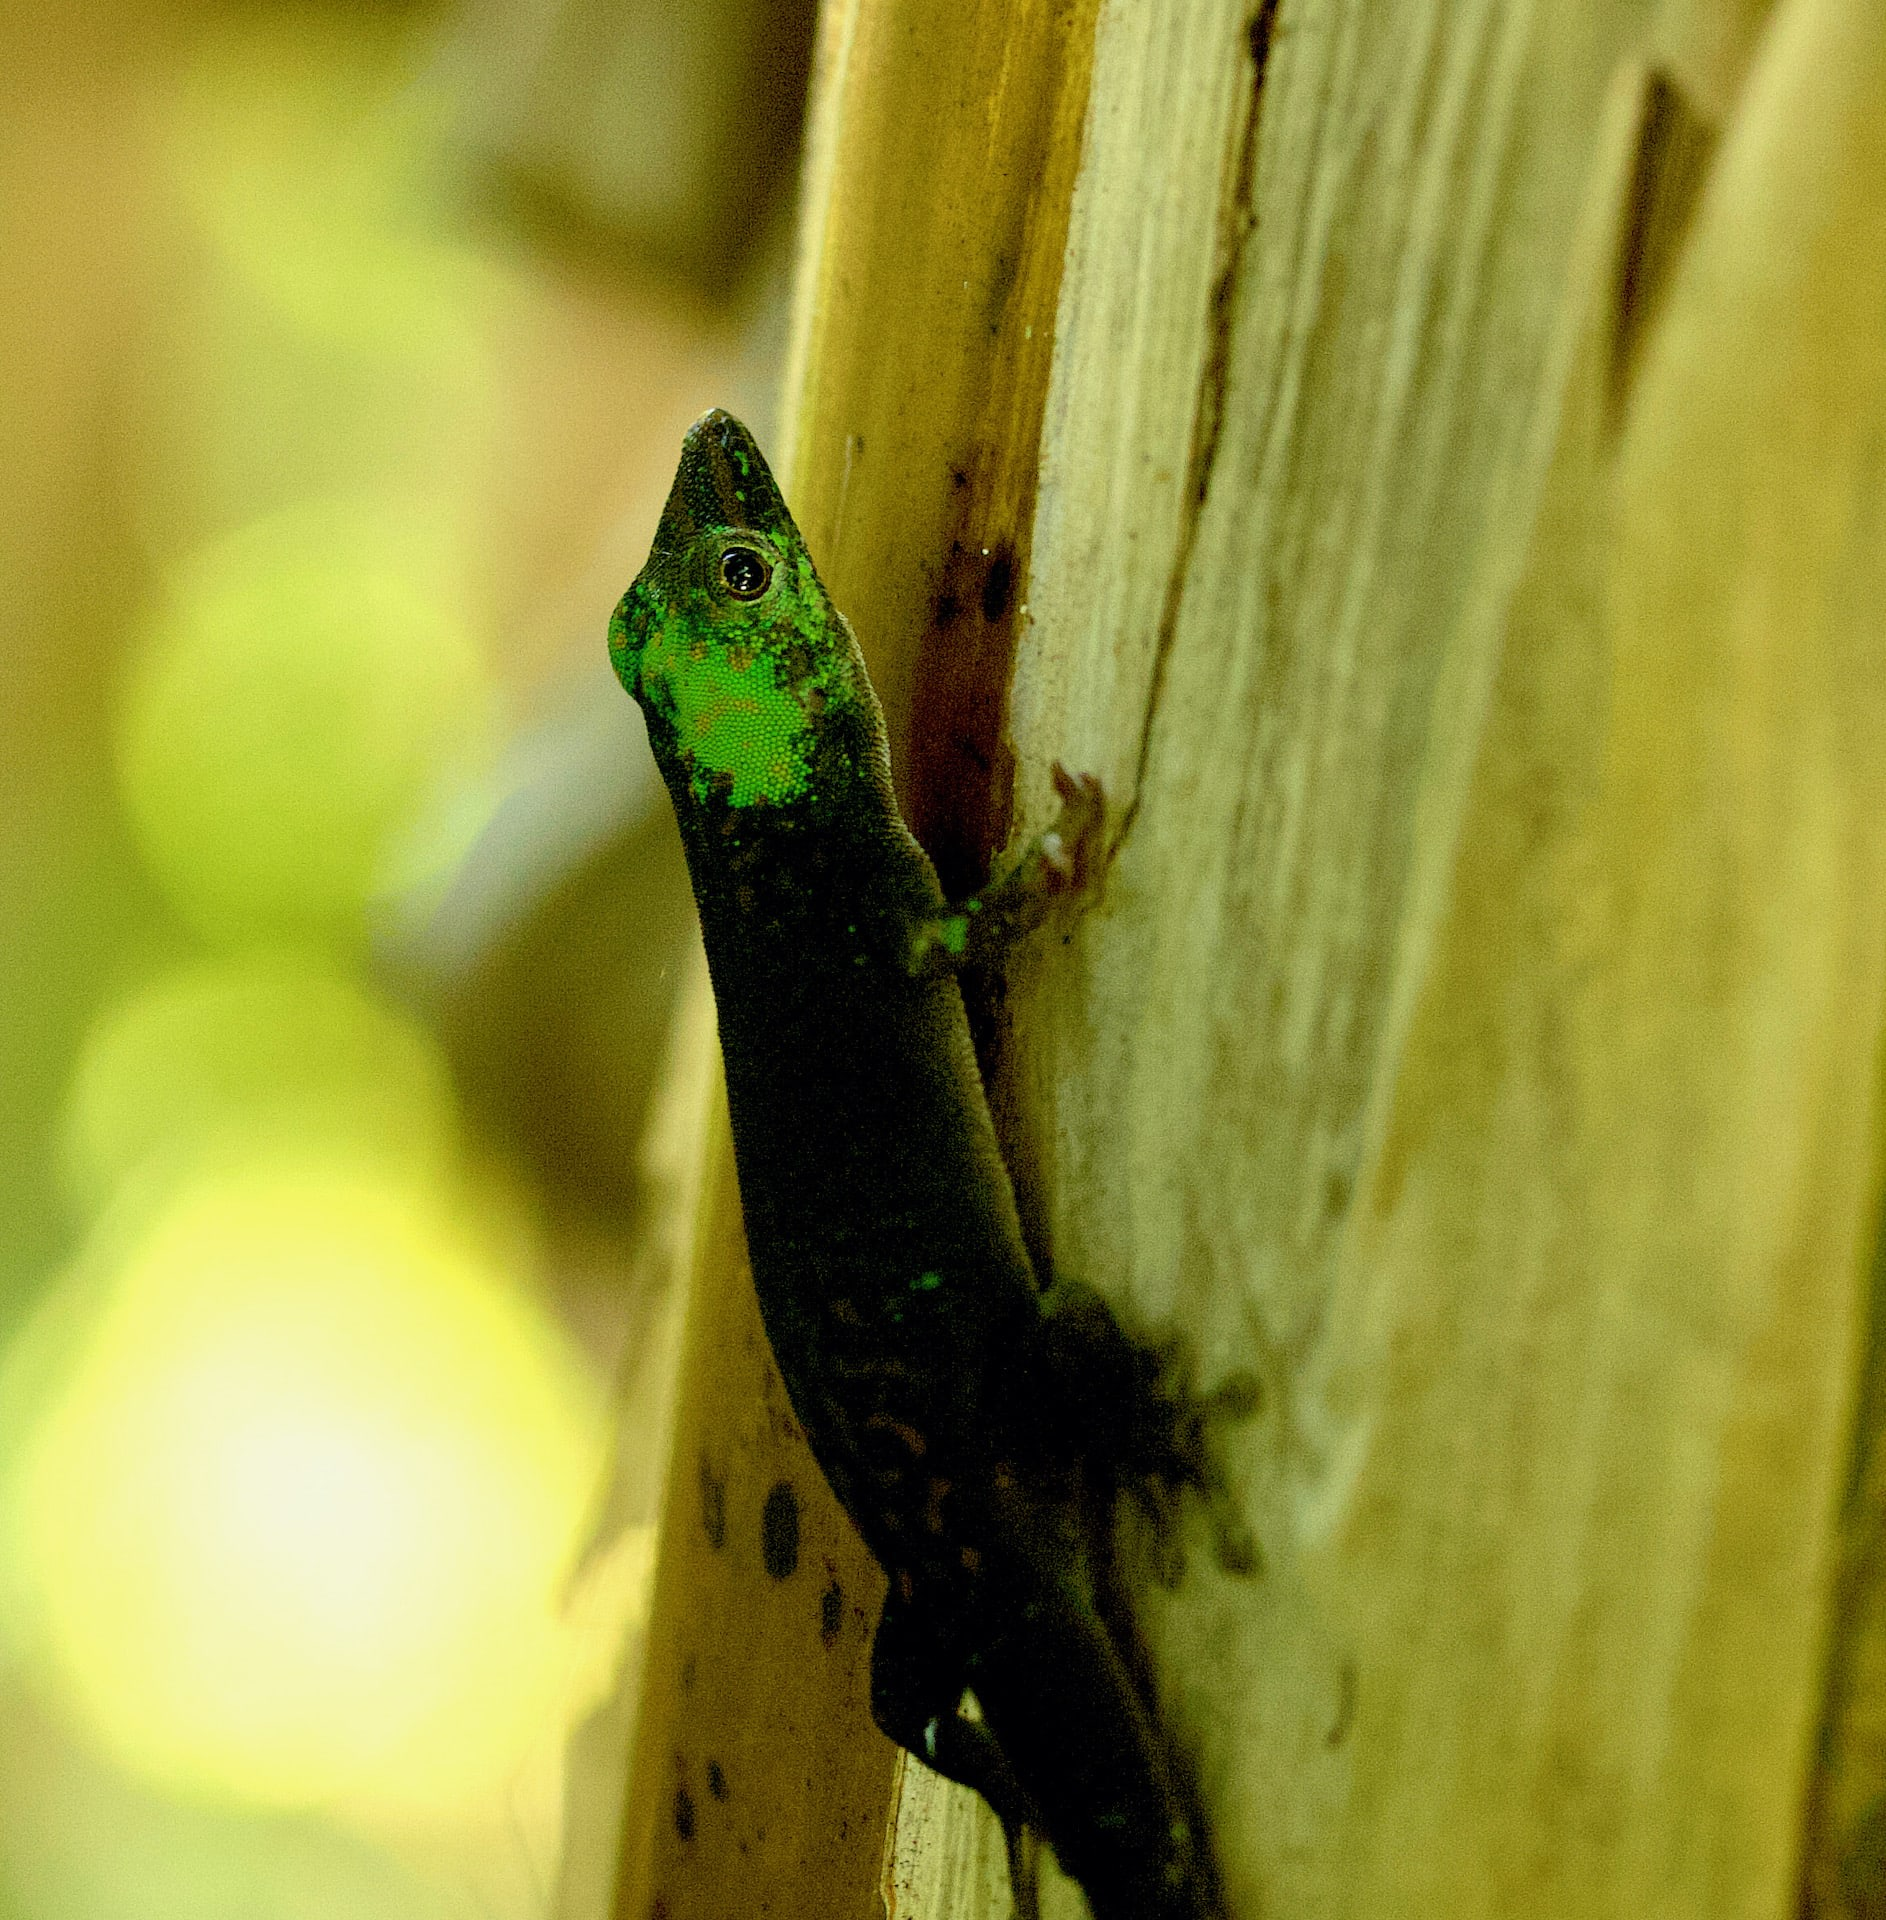 The Andaman day gecko changes its skin colour to sooty-grey or black when threatened. Several other day geckos are known to display this behaviour.  Photo: Ashwini V. Mohan